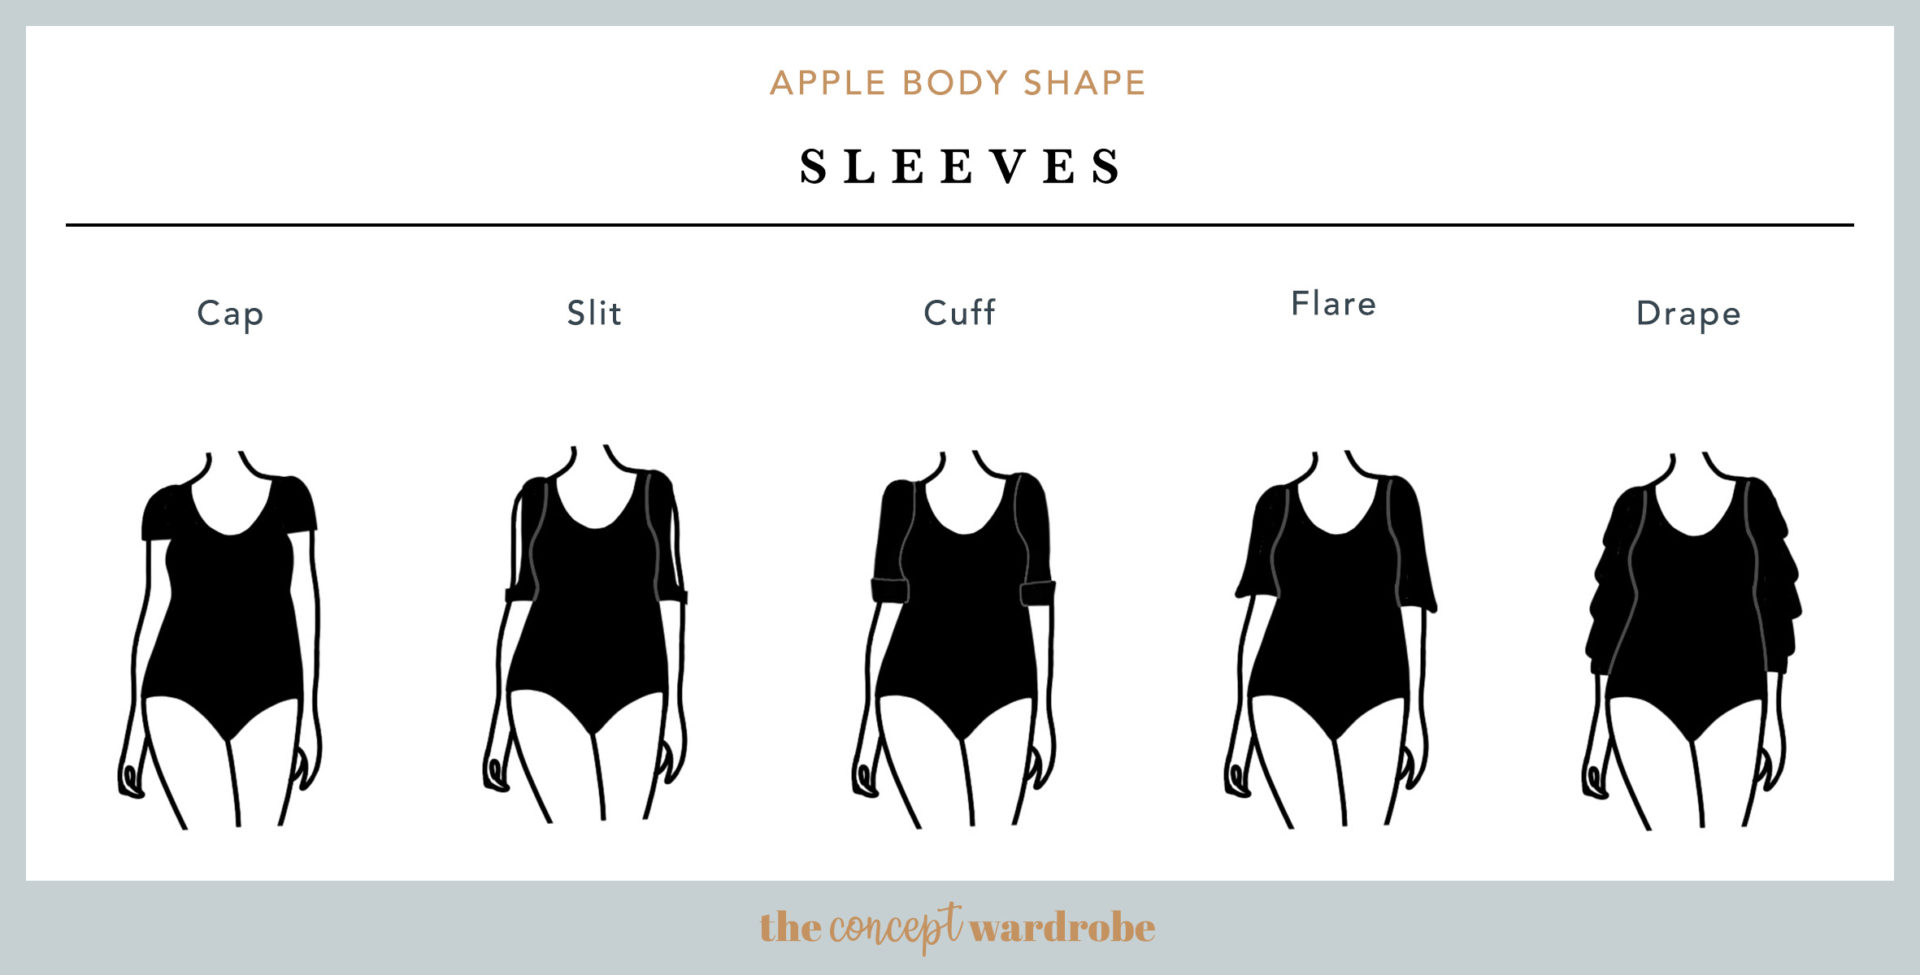 Apple Body Shape Sleeves - the concept wardrobe